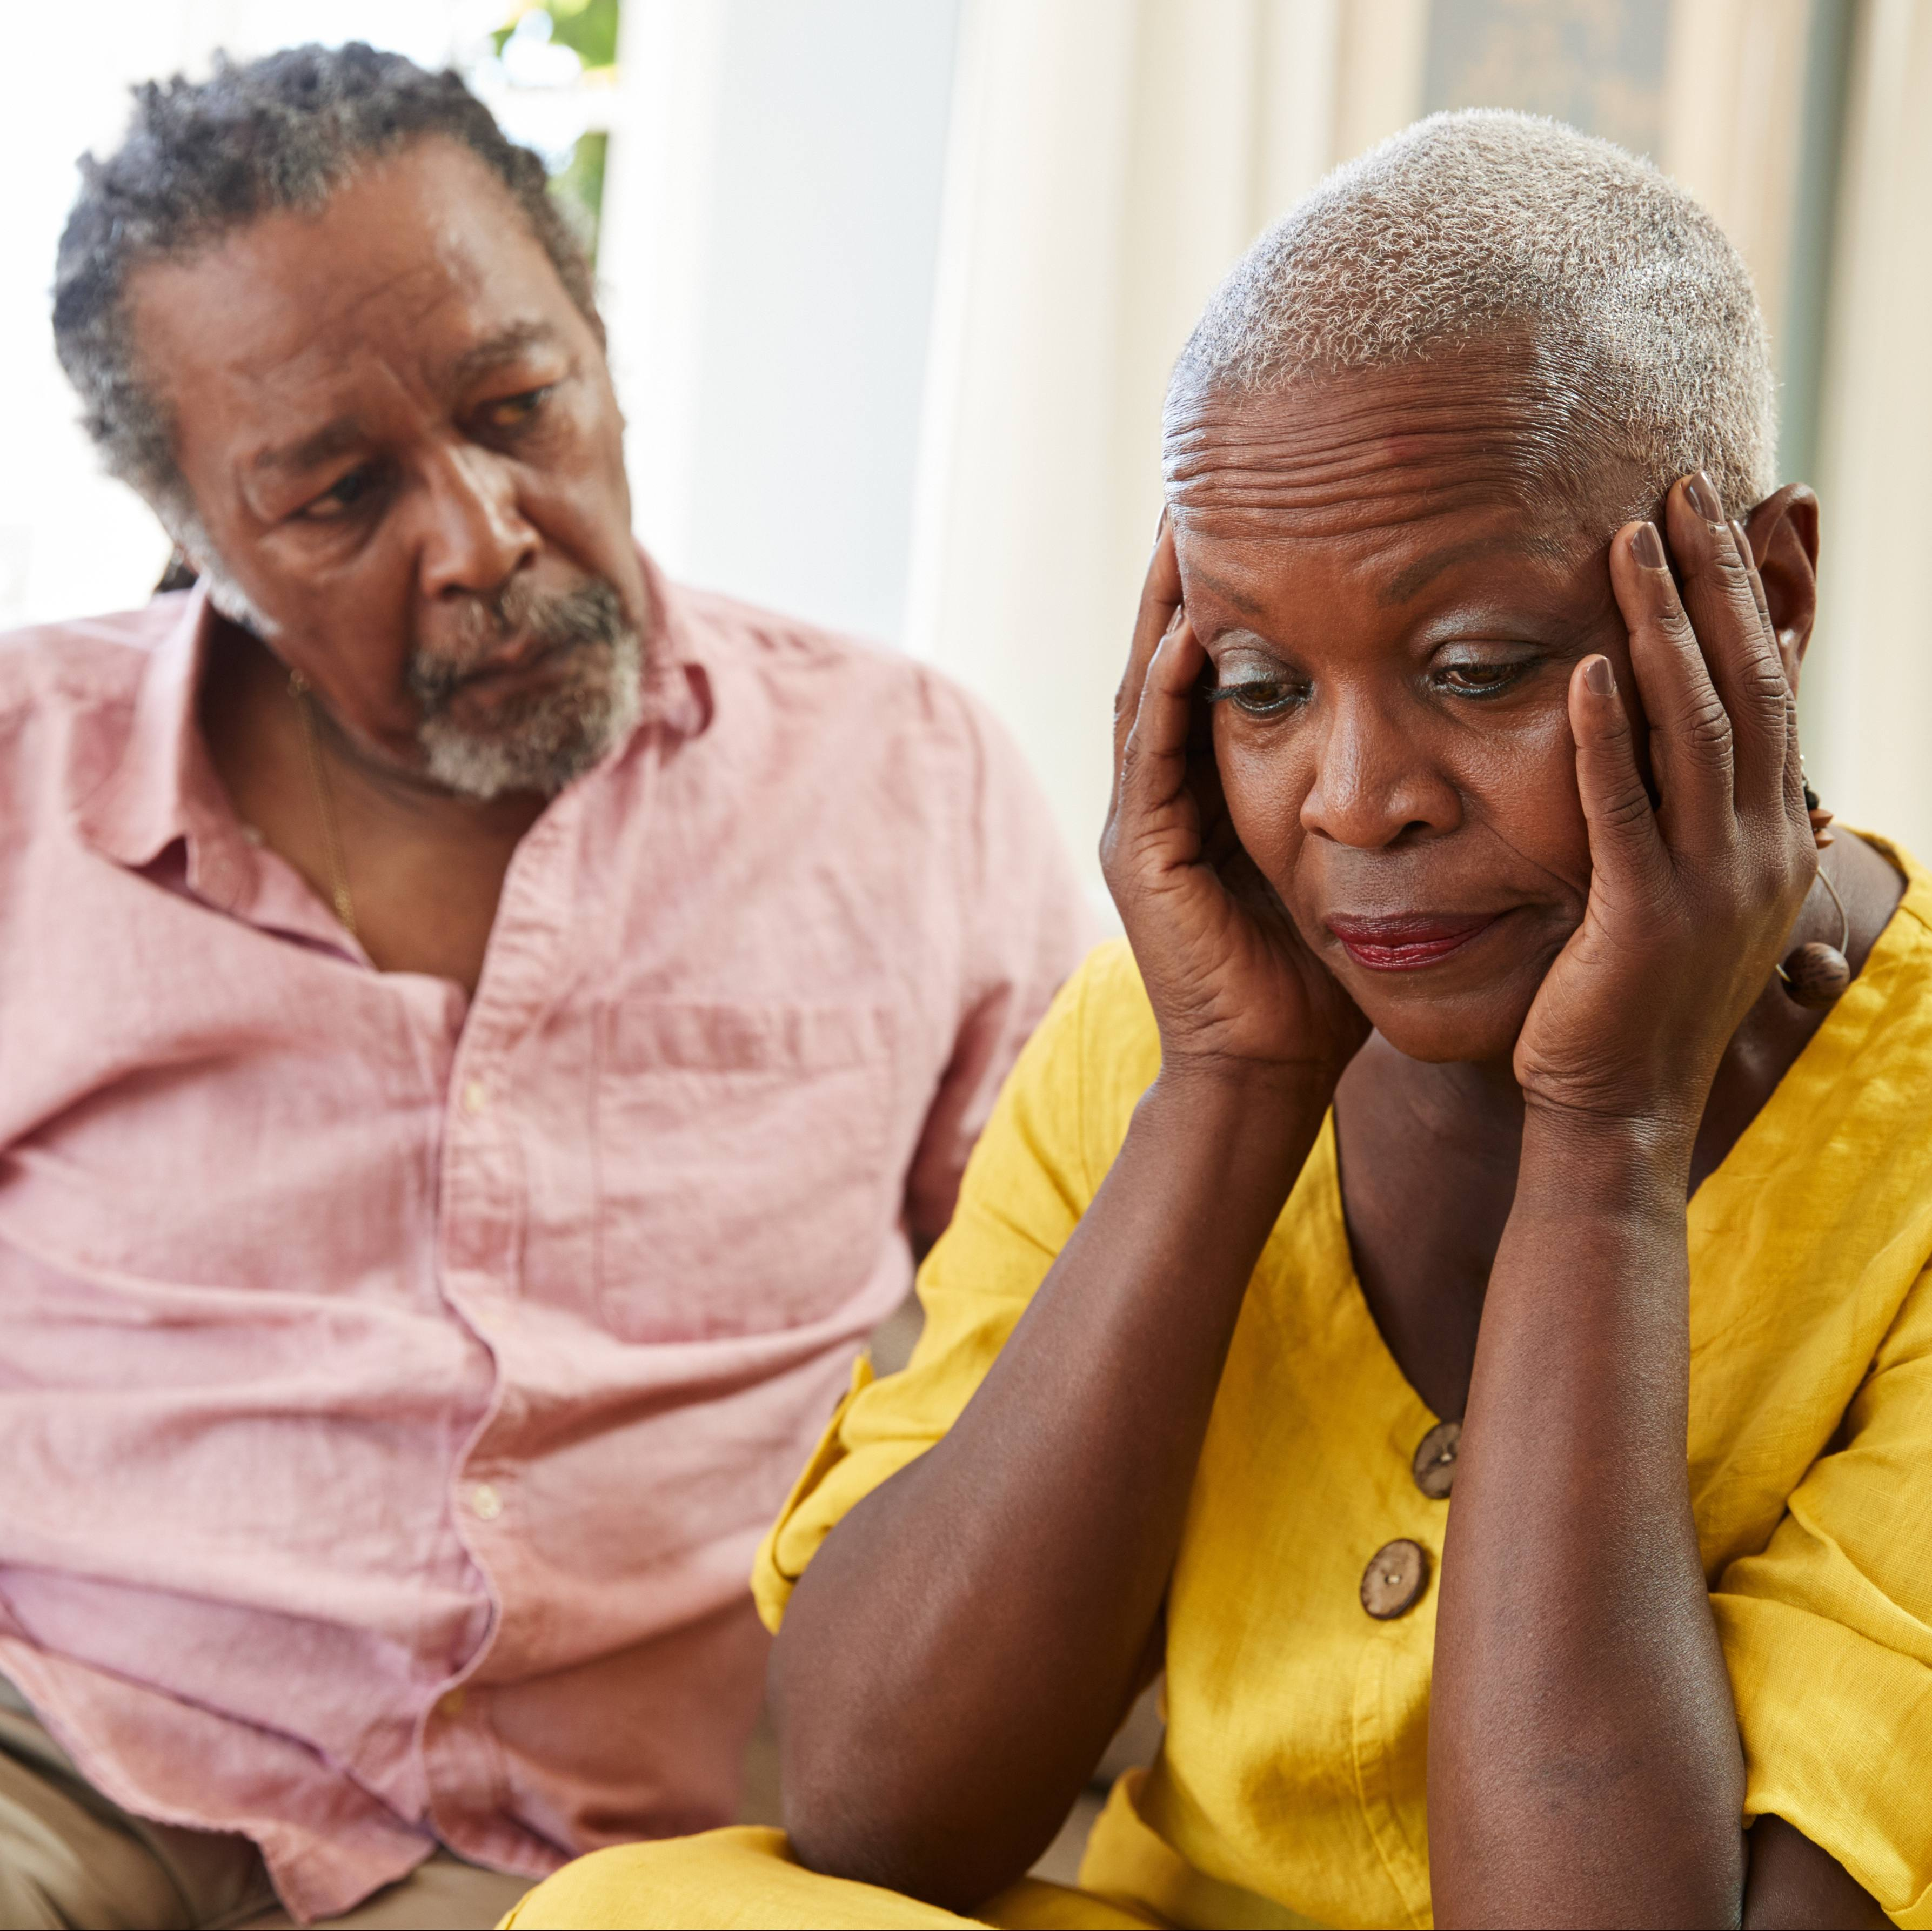 a sad and worried looking African American middle-aged couple sitting on a couch, with the woman holding her head